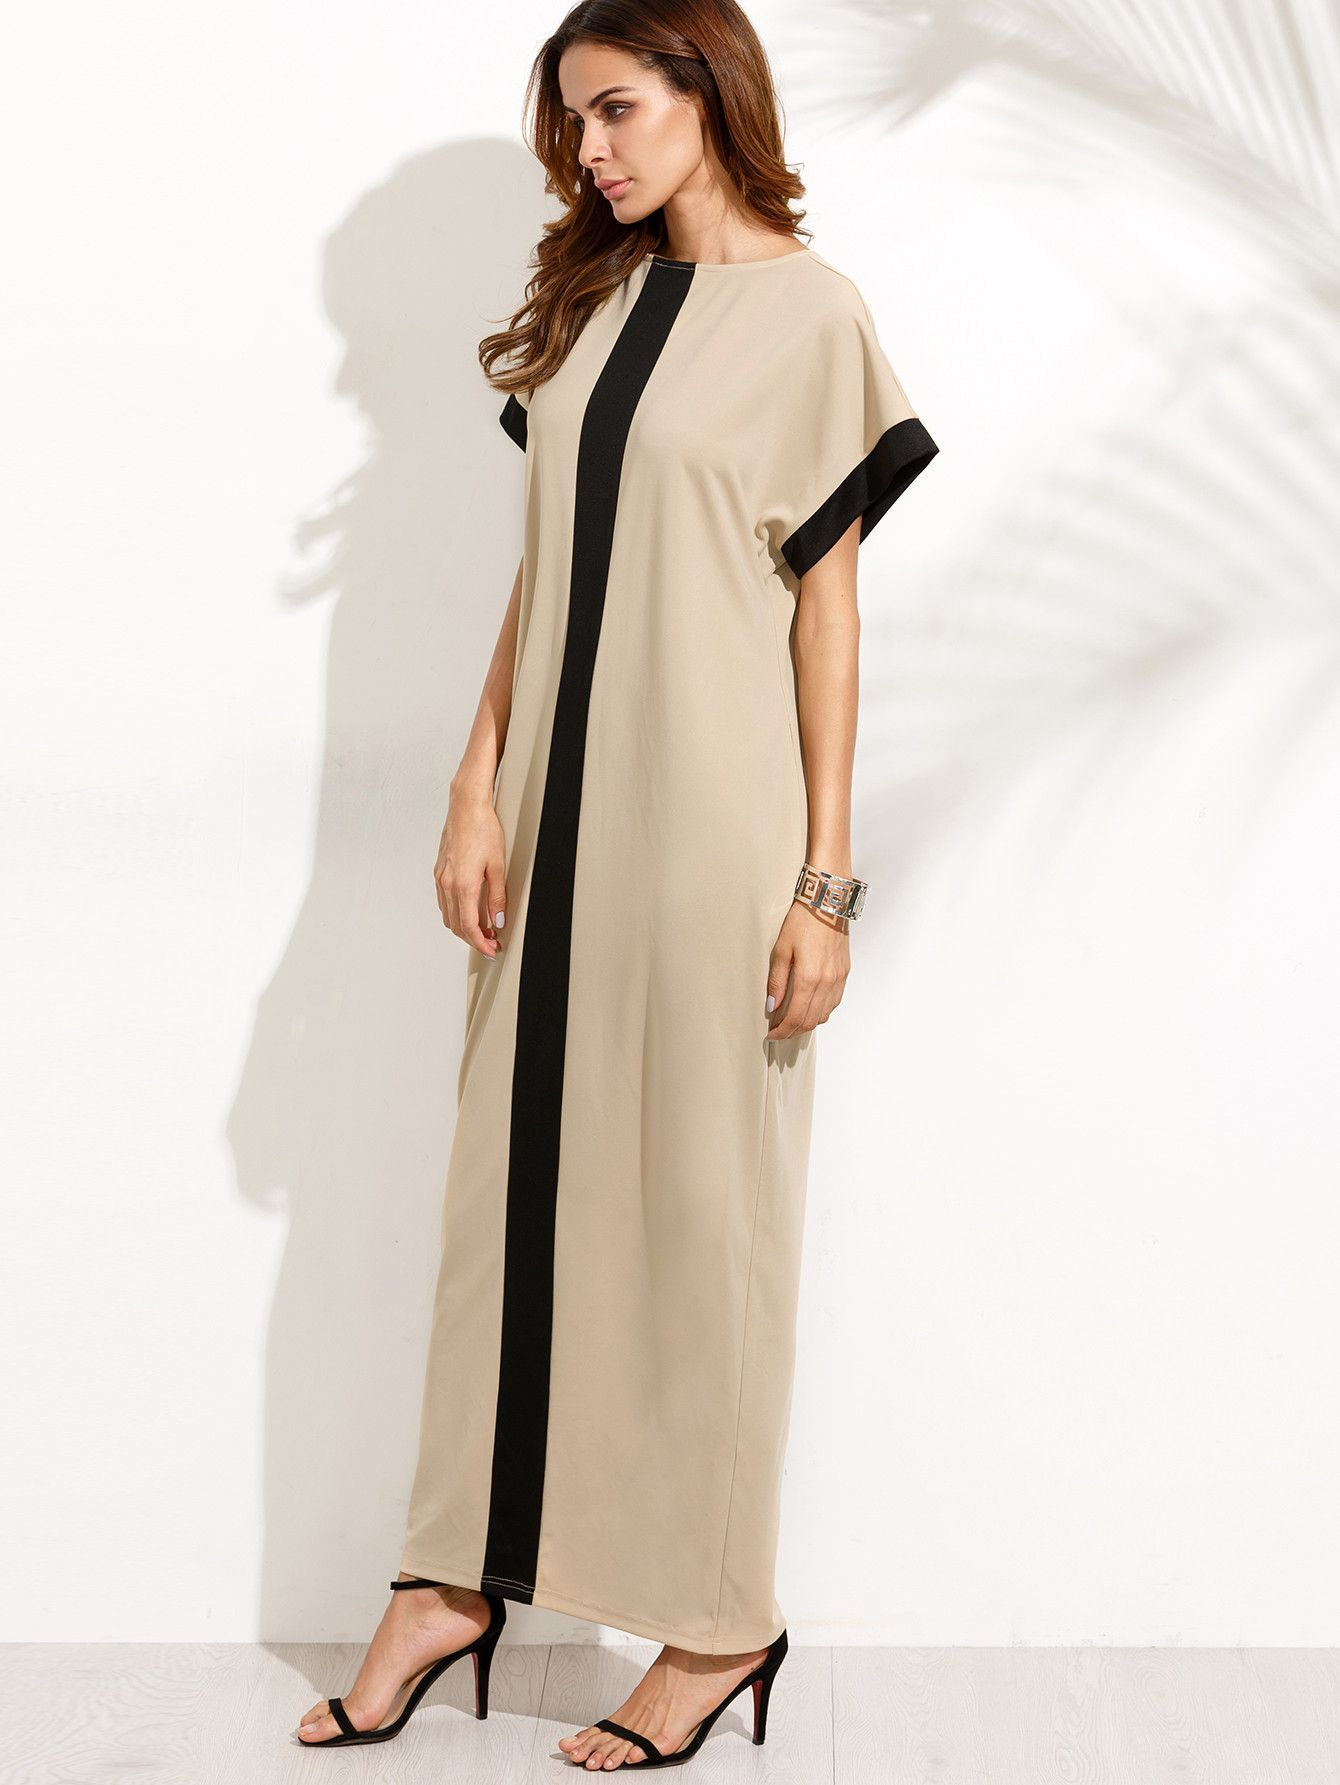 8016b17b585 Fabric  Fabric has some stretch Season  Summer Type  Tunic Pattern Type   Color Block Sleeve Length  Short Sleeve Color  Apricot Dresses Length  Maxi  Style  ...